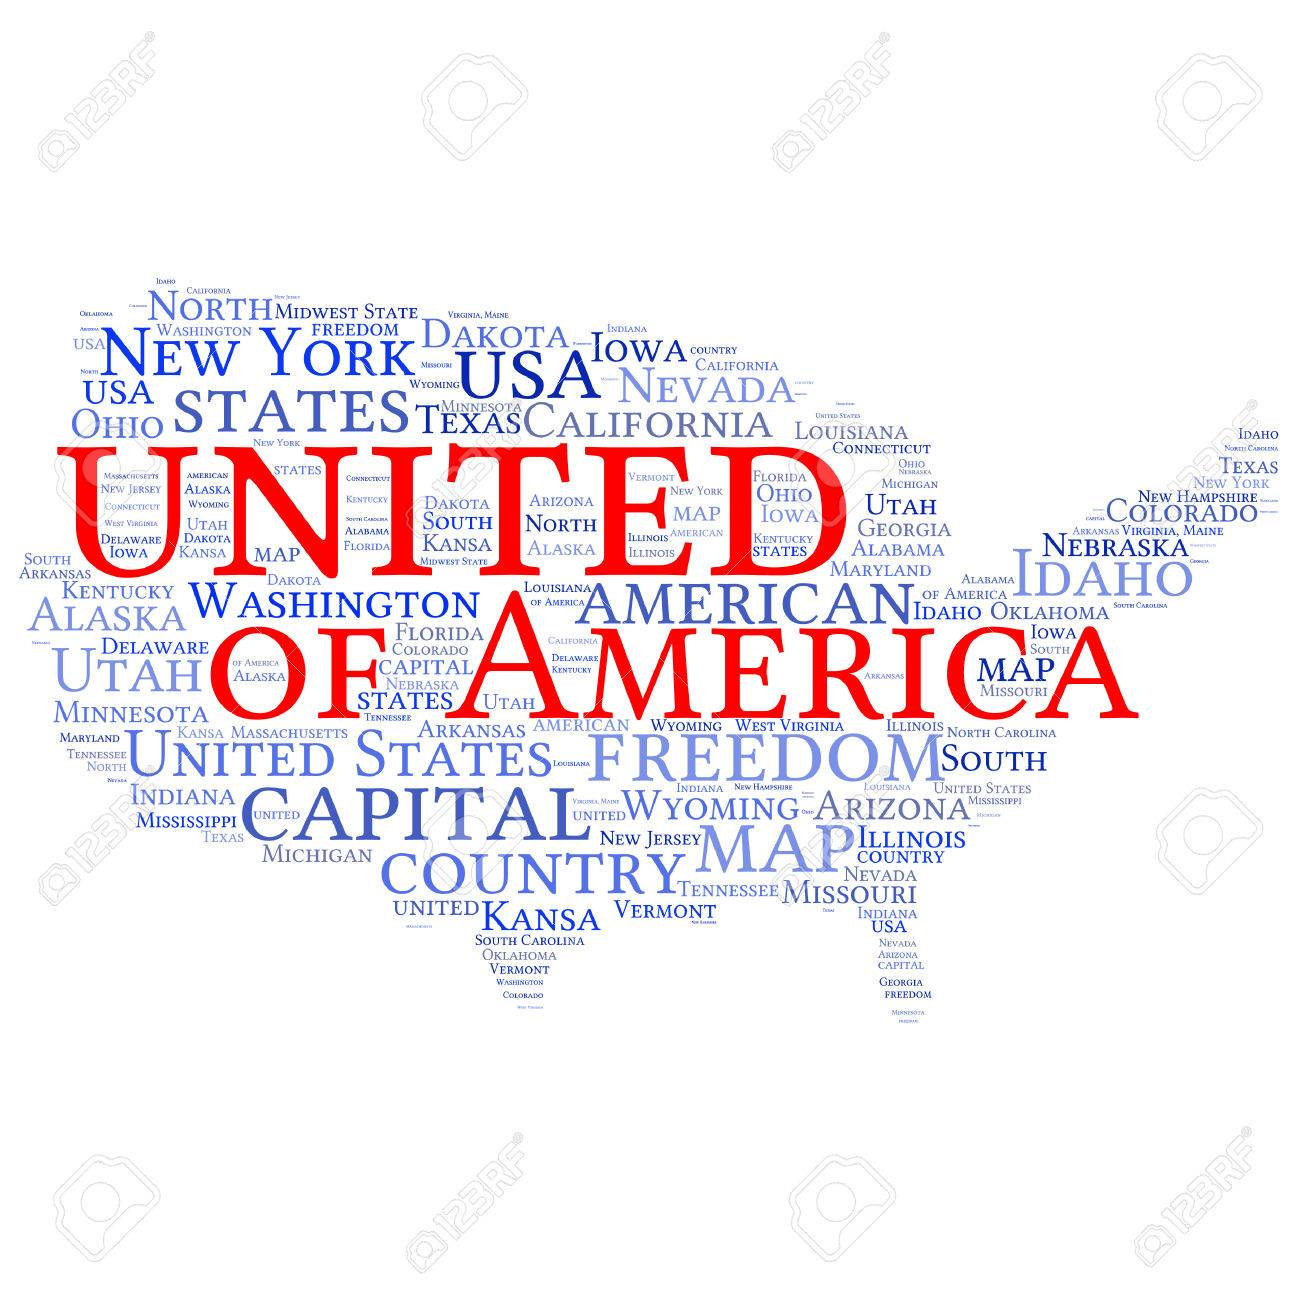 USA State Map Tag Cloud Vector Illustration Royalty Free Cliparts - South jersey map usa